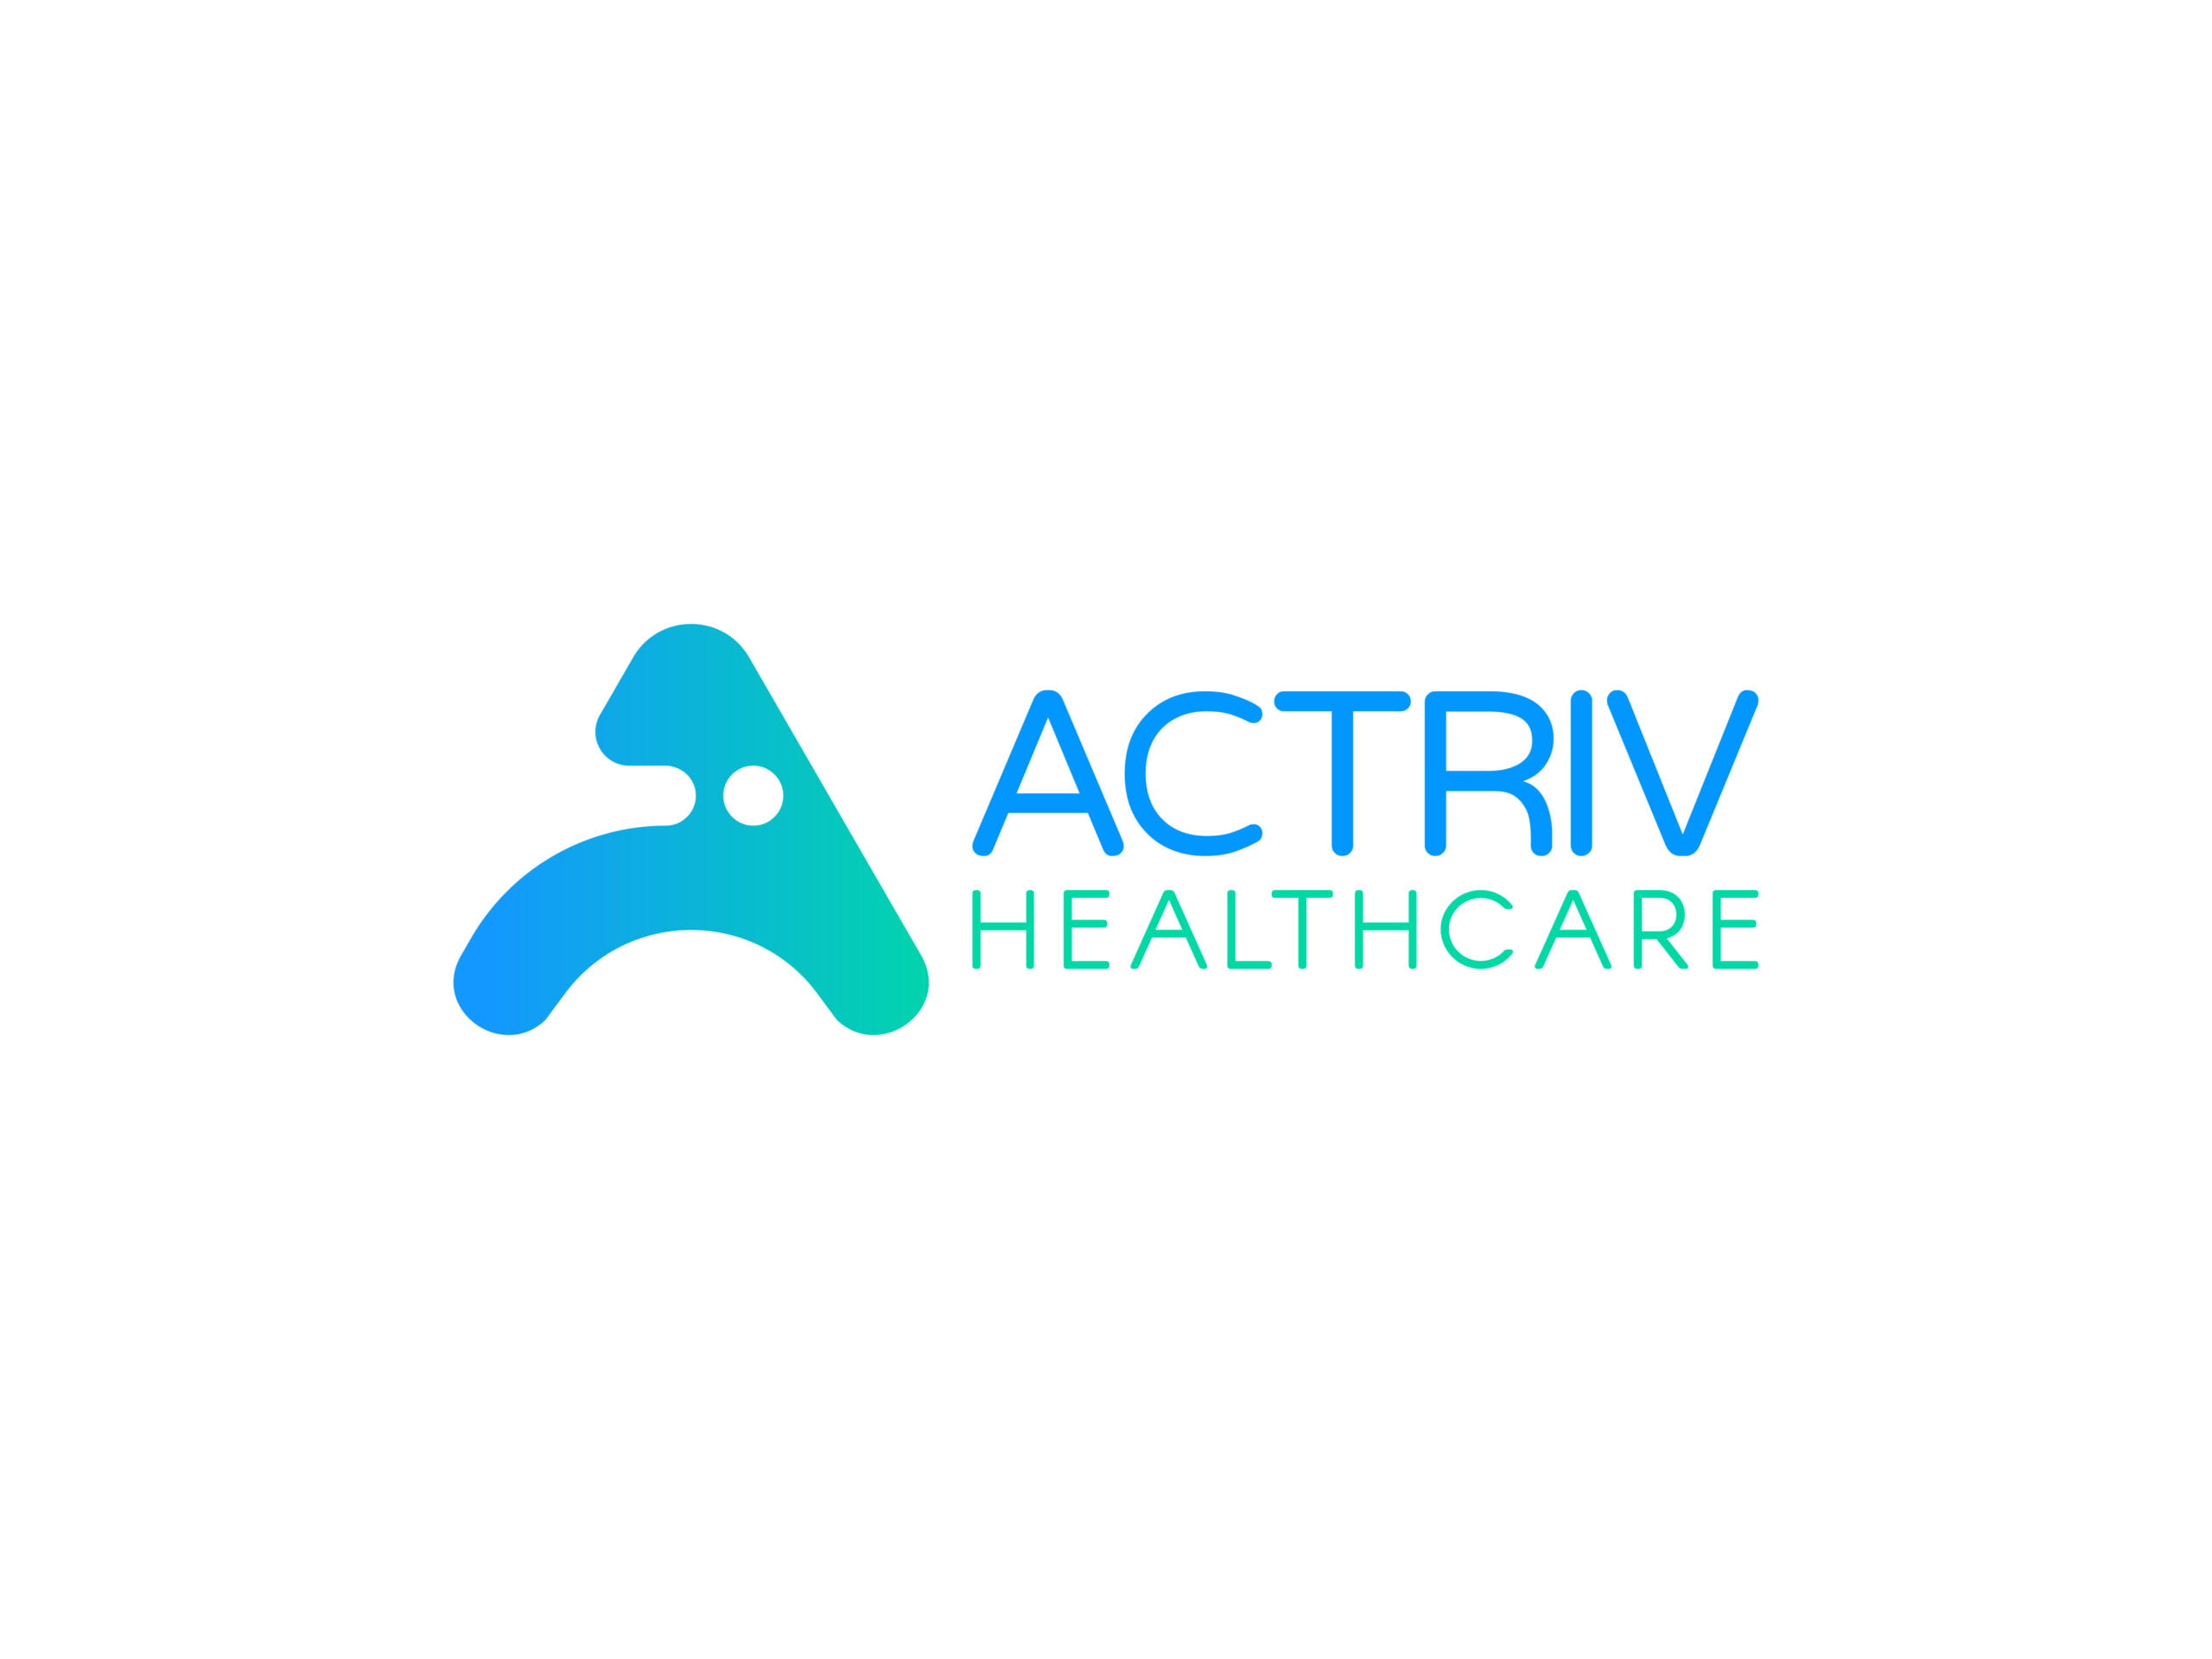 Actriv Inc. Announces Merger With Action Healthcare Staffing